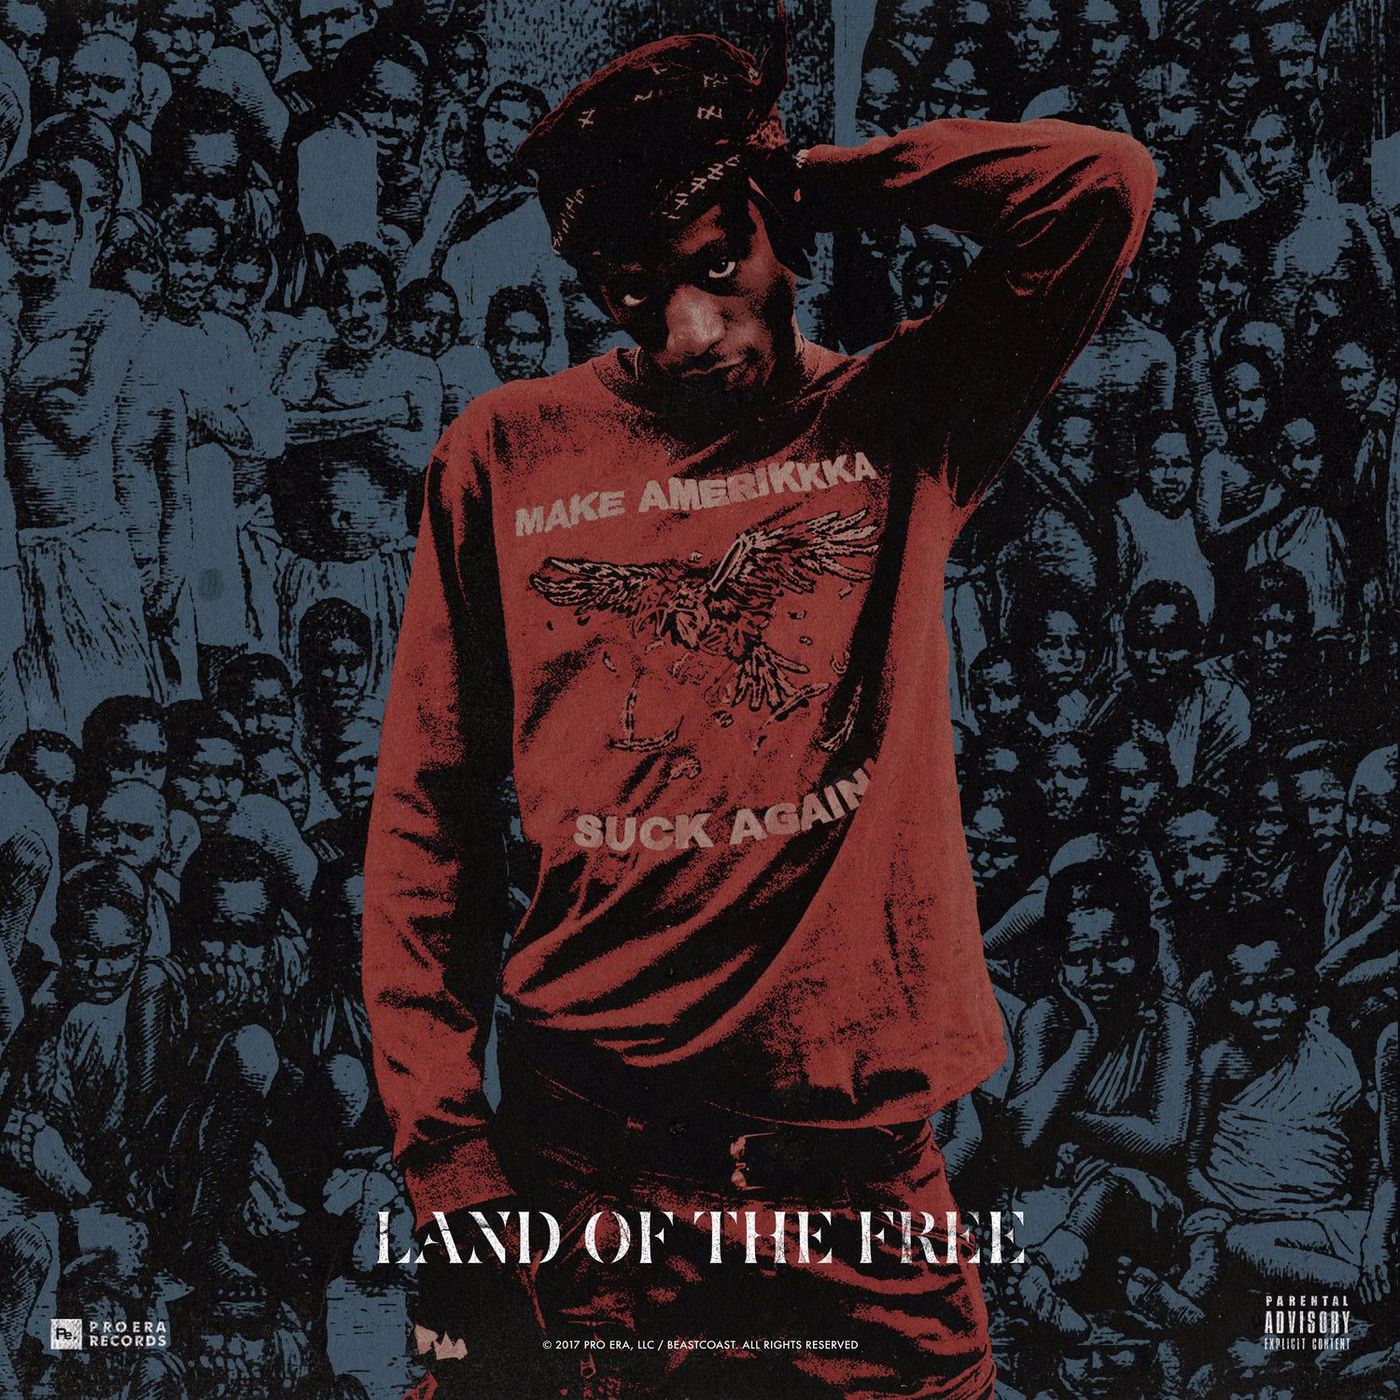 Joey Bada$$ shares new track 'Land of the Free'